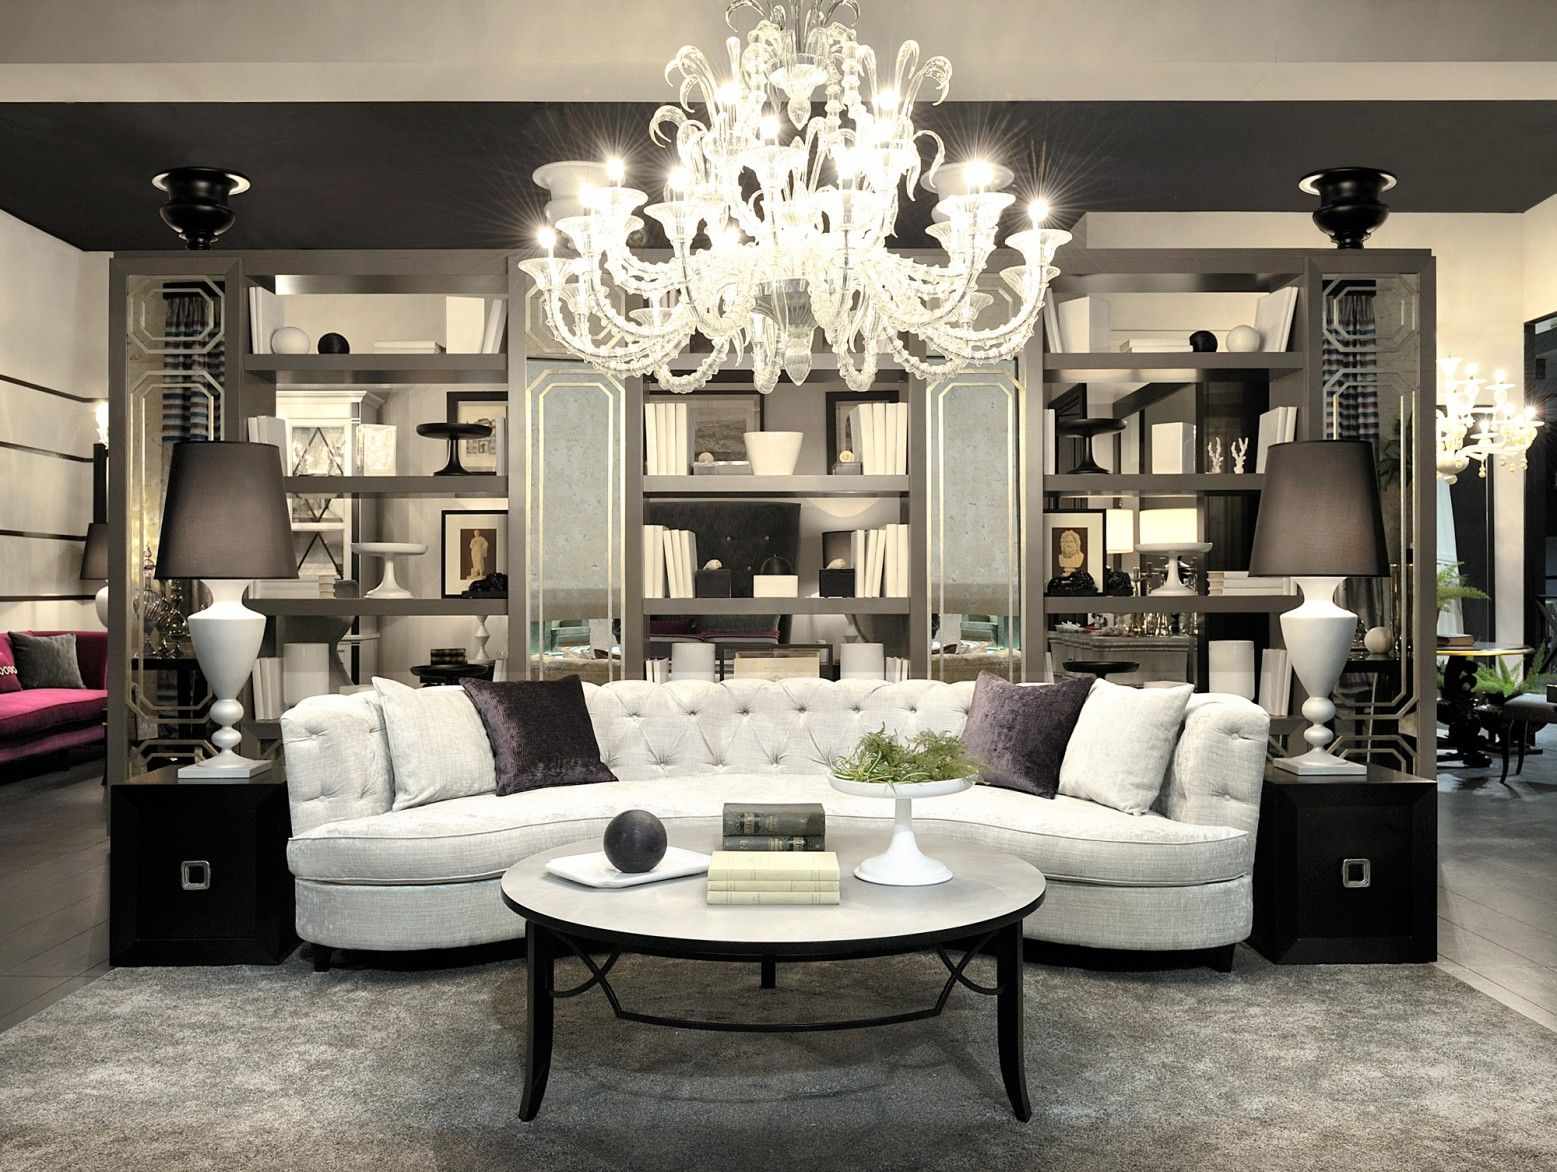 Luxdeco the place to discover u buy luxury furniture homeware